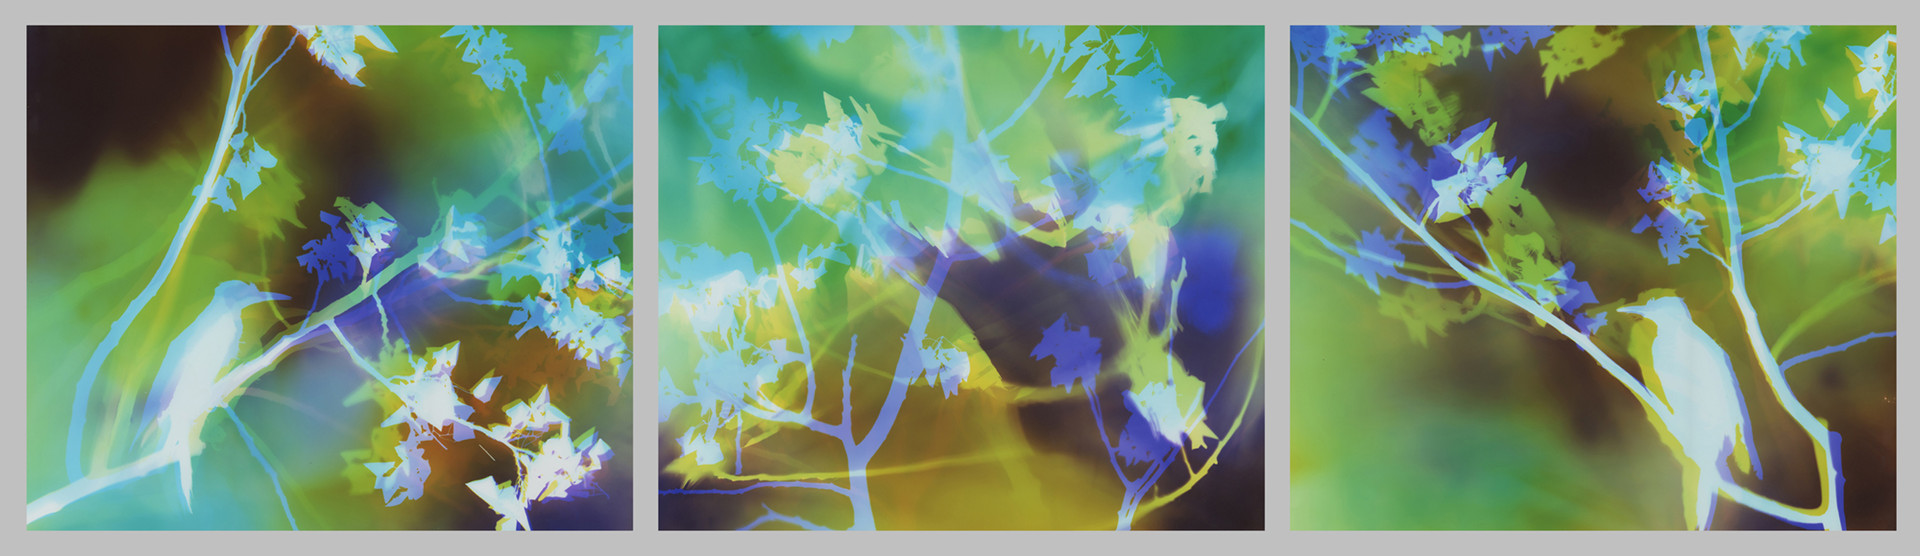 Love Birds Searching, 24″ x 60″ (3 24″ x 20″ panels), Collection of Kaiser Permanente Dublin, CA